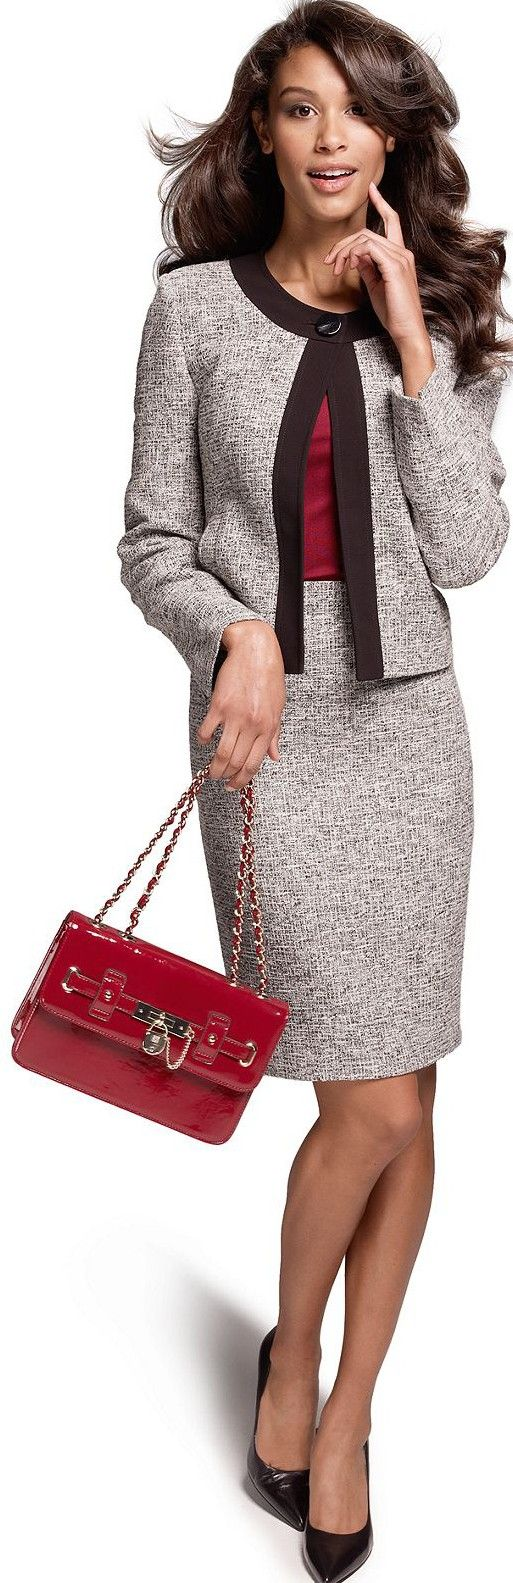 Beautiful suit..perfectly done, great for career dressing and could be split up and used separately for different looks.